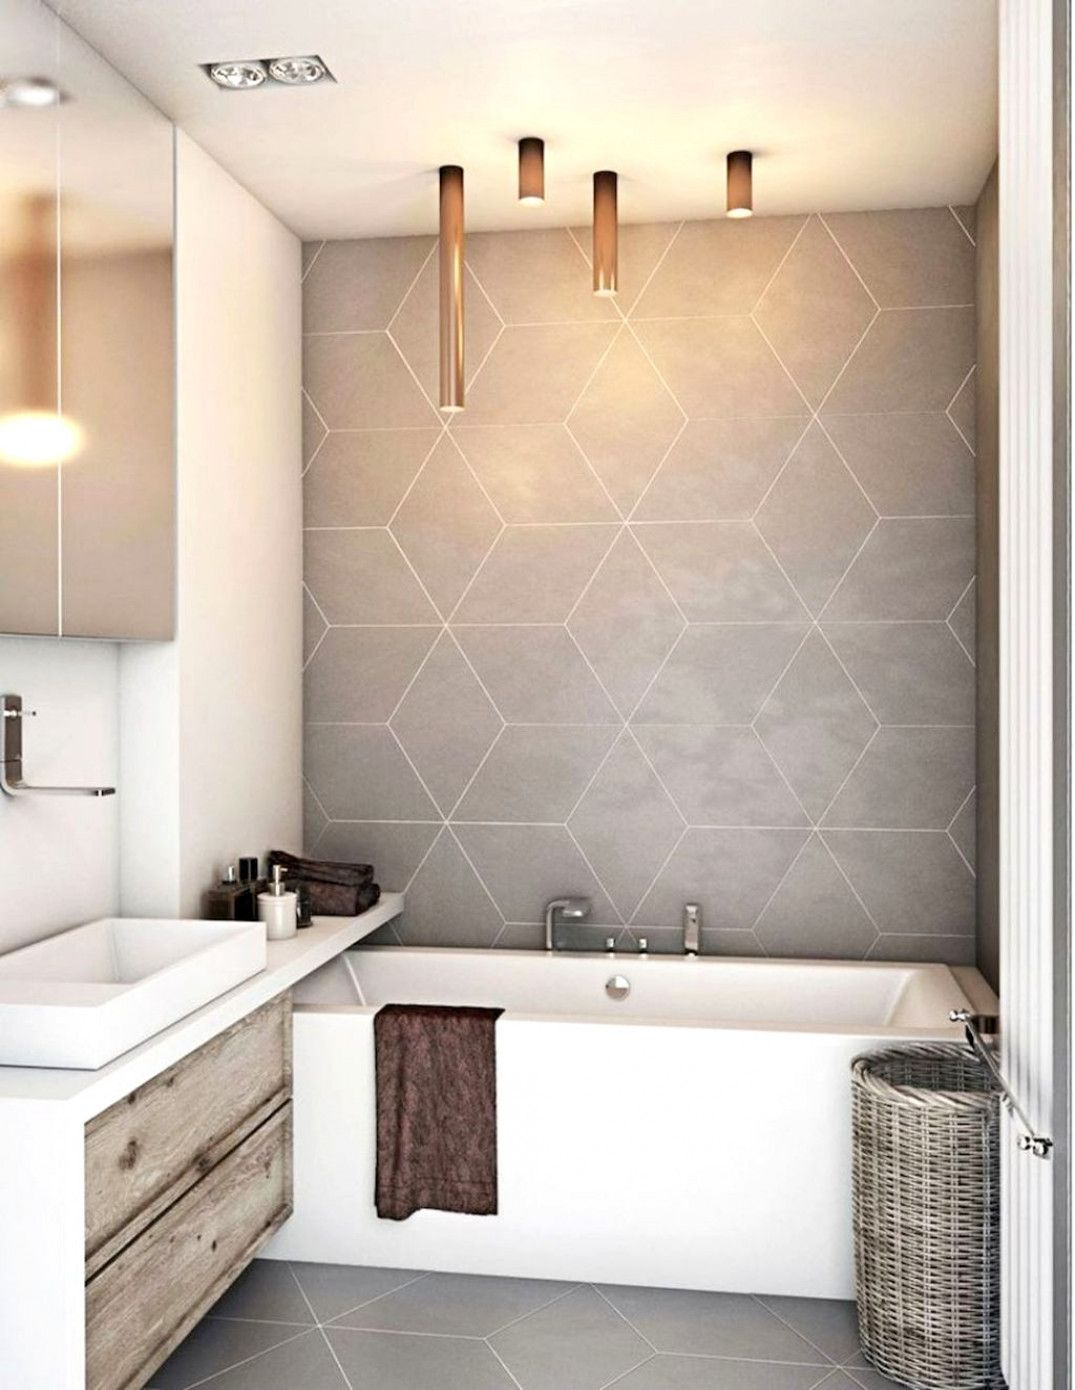 How Much Does A Bathroom Renovation Cost Bathroom Tile Designs Modern Bathroom Decor Patterned Bathroom Tiles